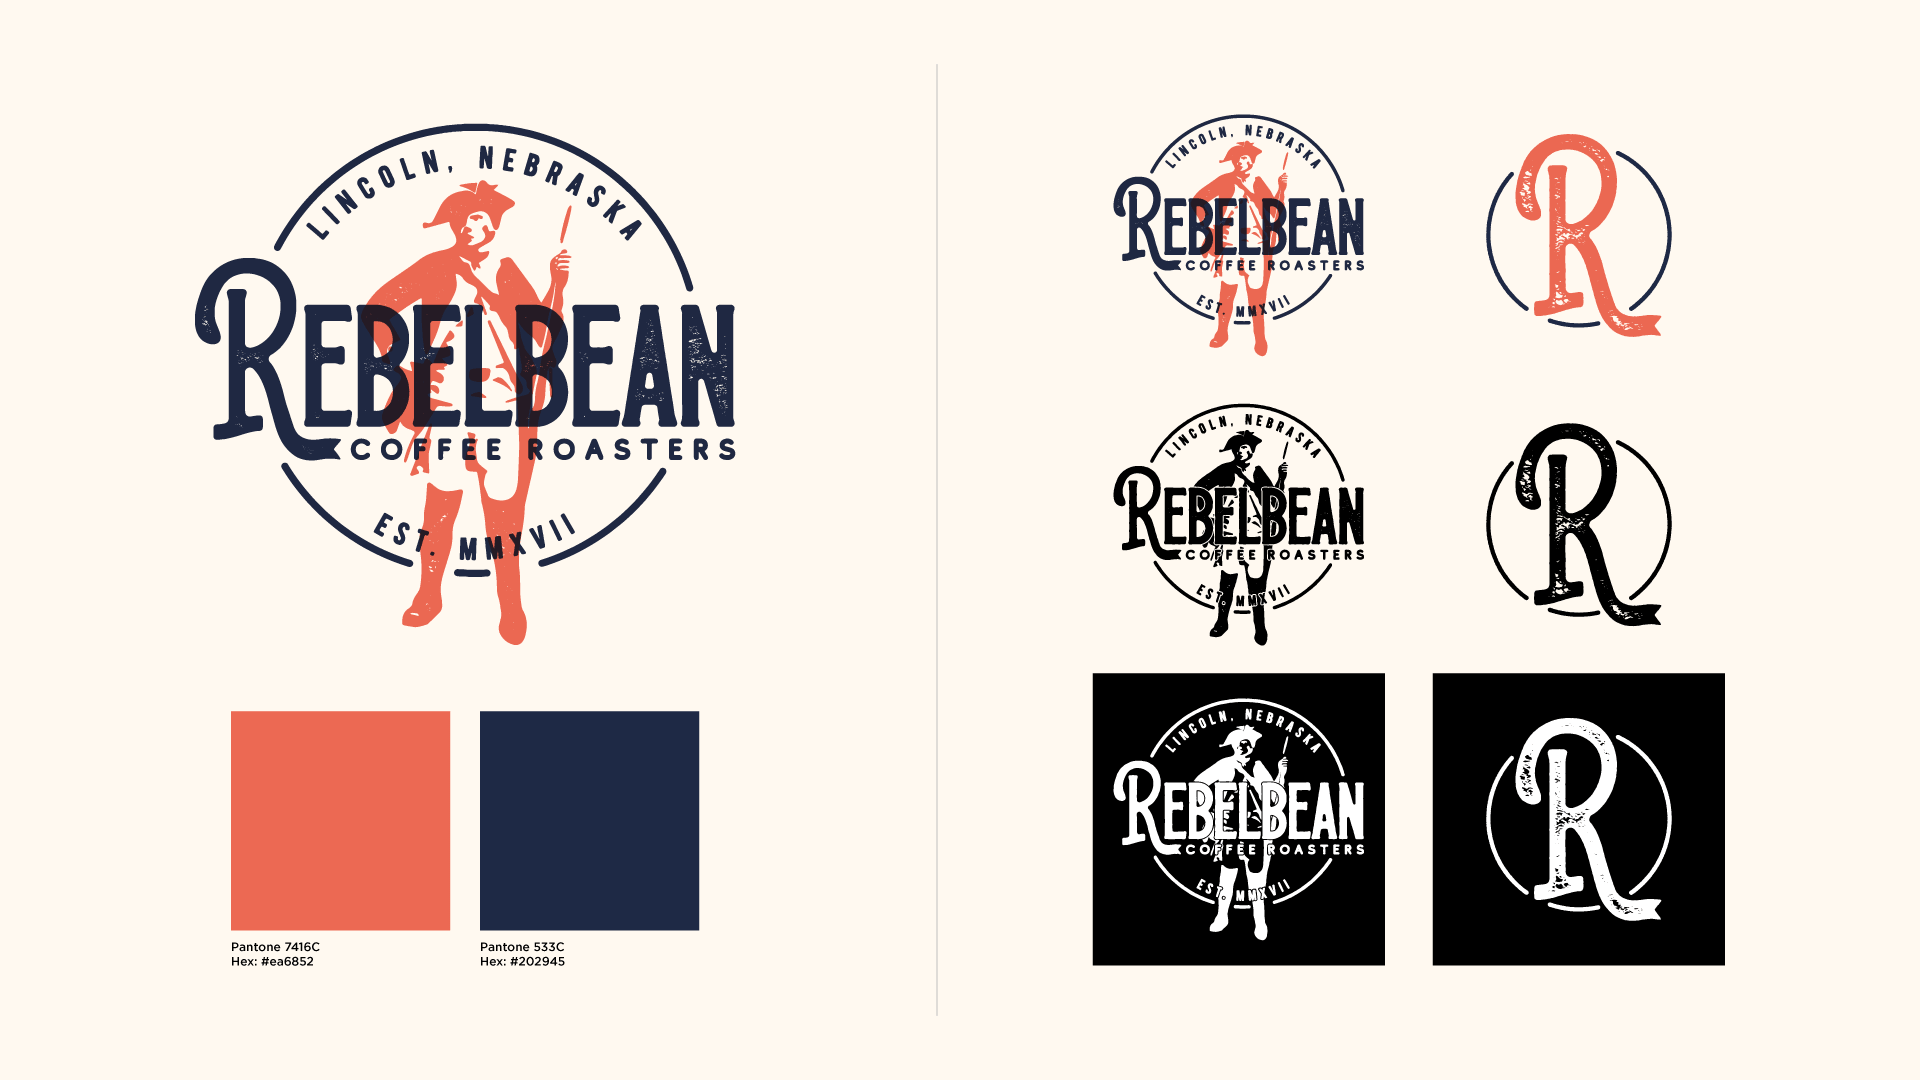 Rt014 Rebelbean Logo 03 2019 10 15 Rd01